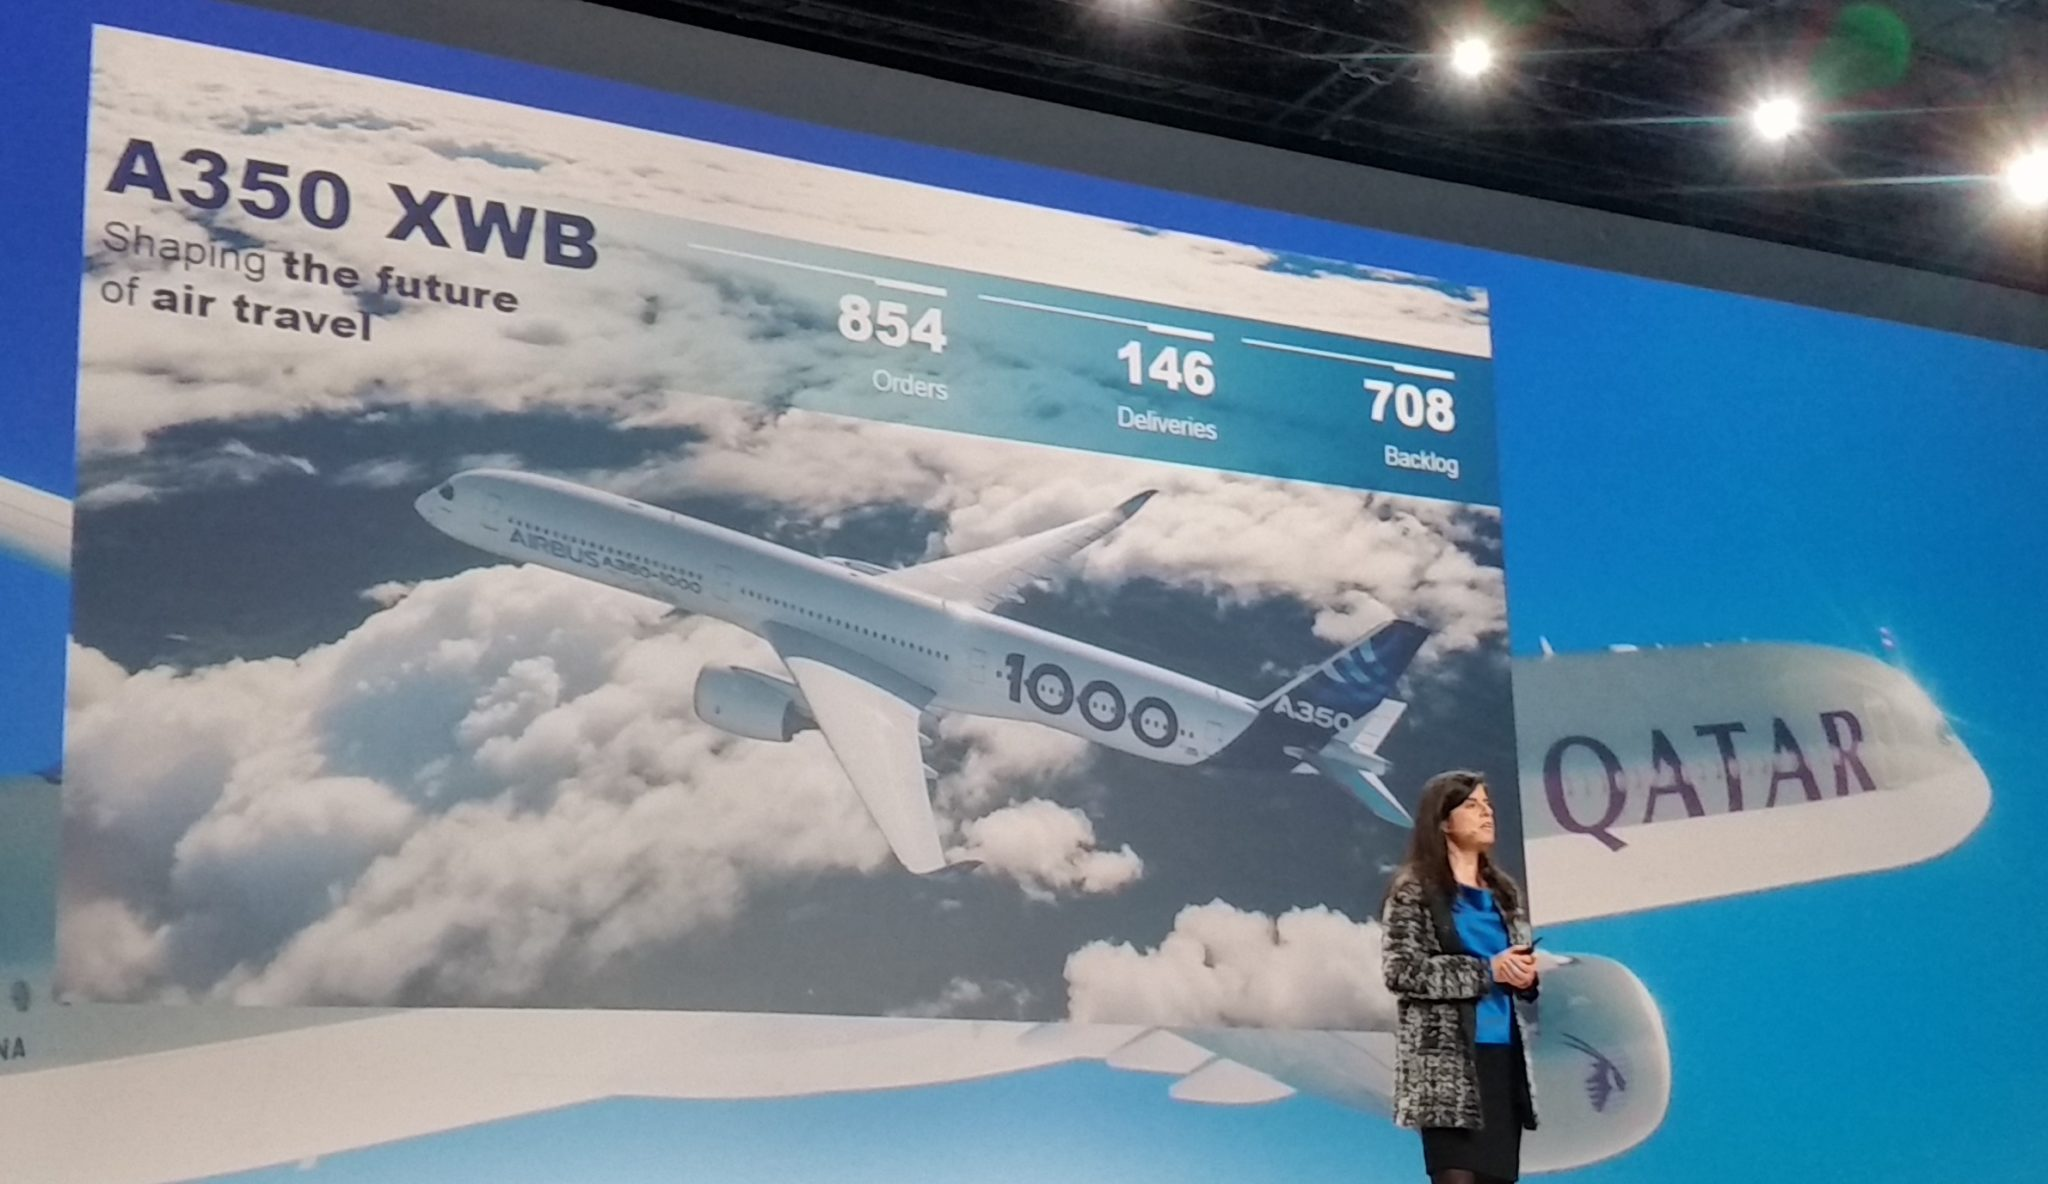 Airbus readies A350-1000 for delivery, dismisses Boeing 777-9